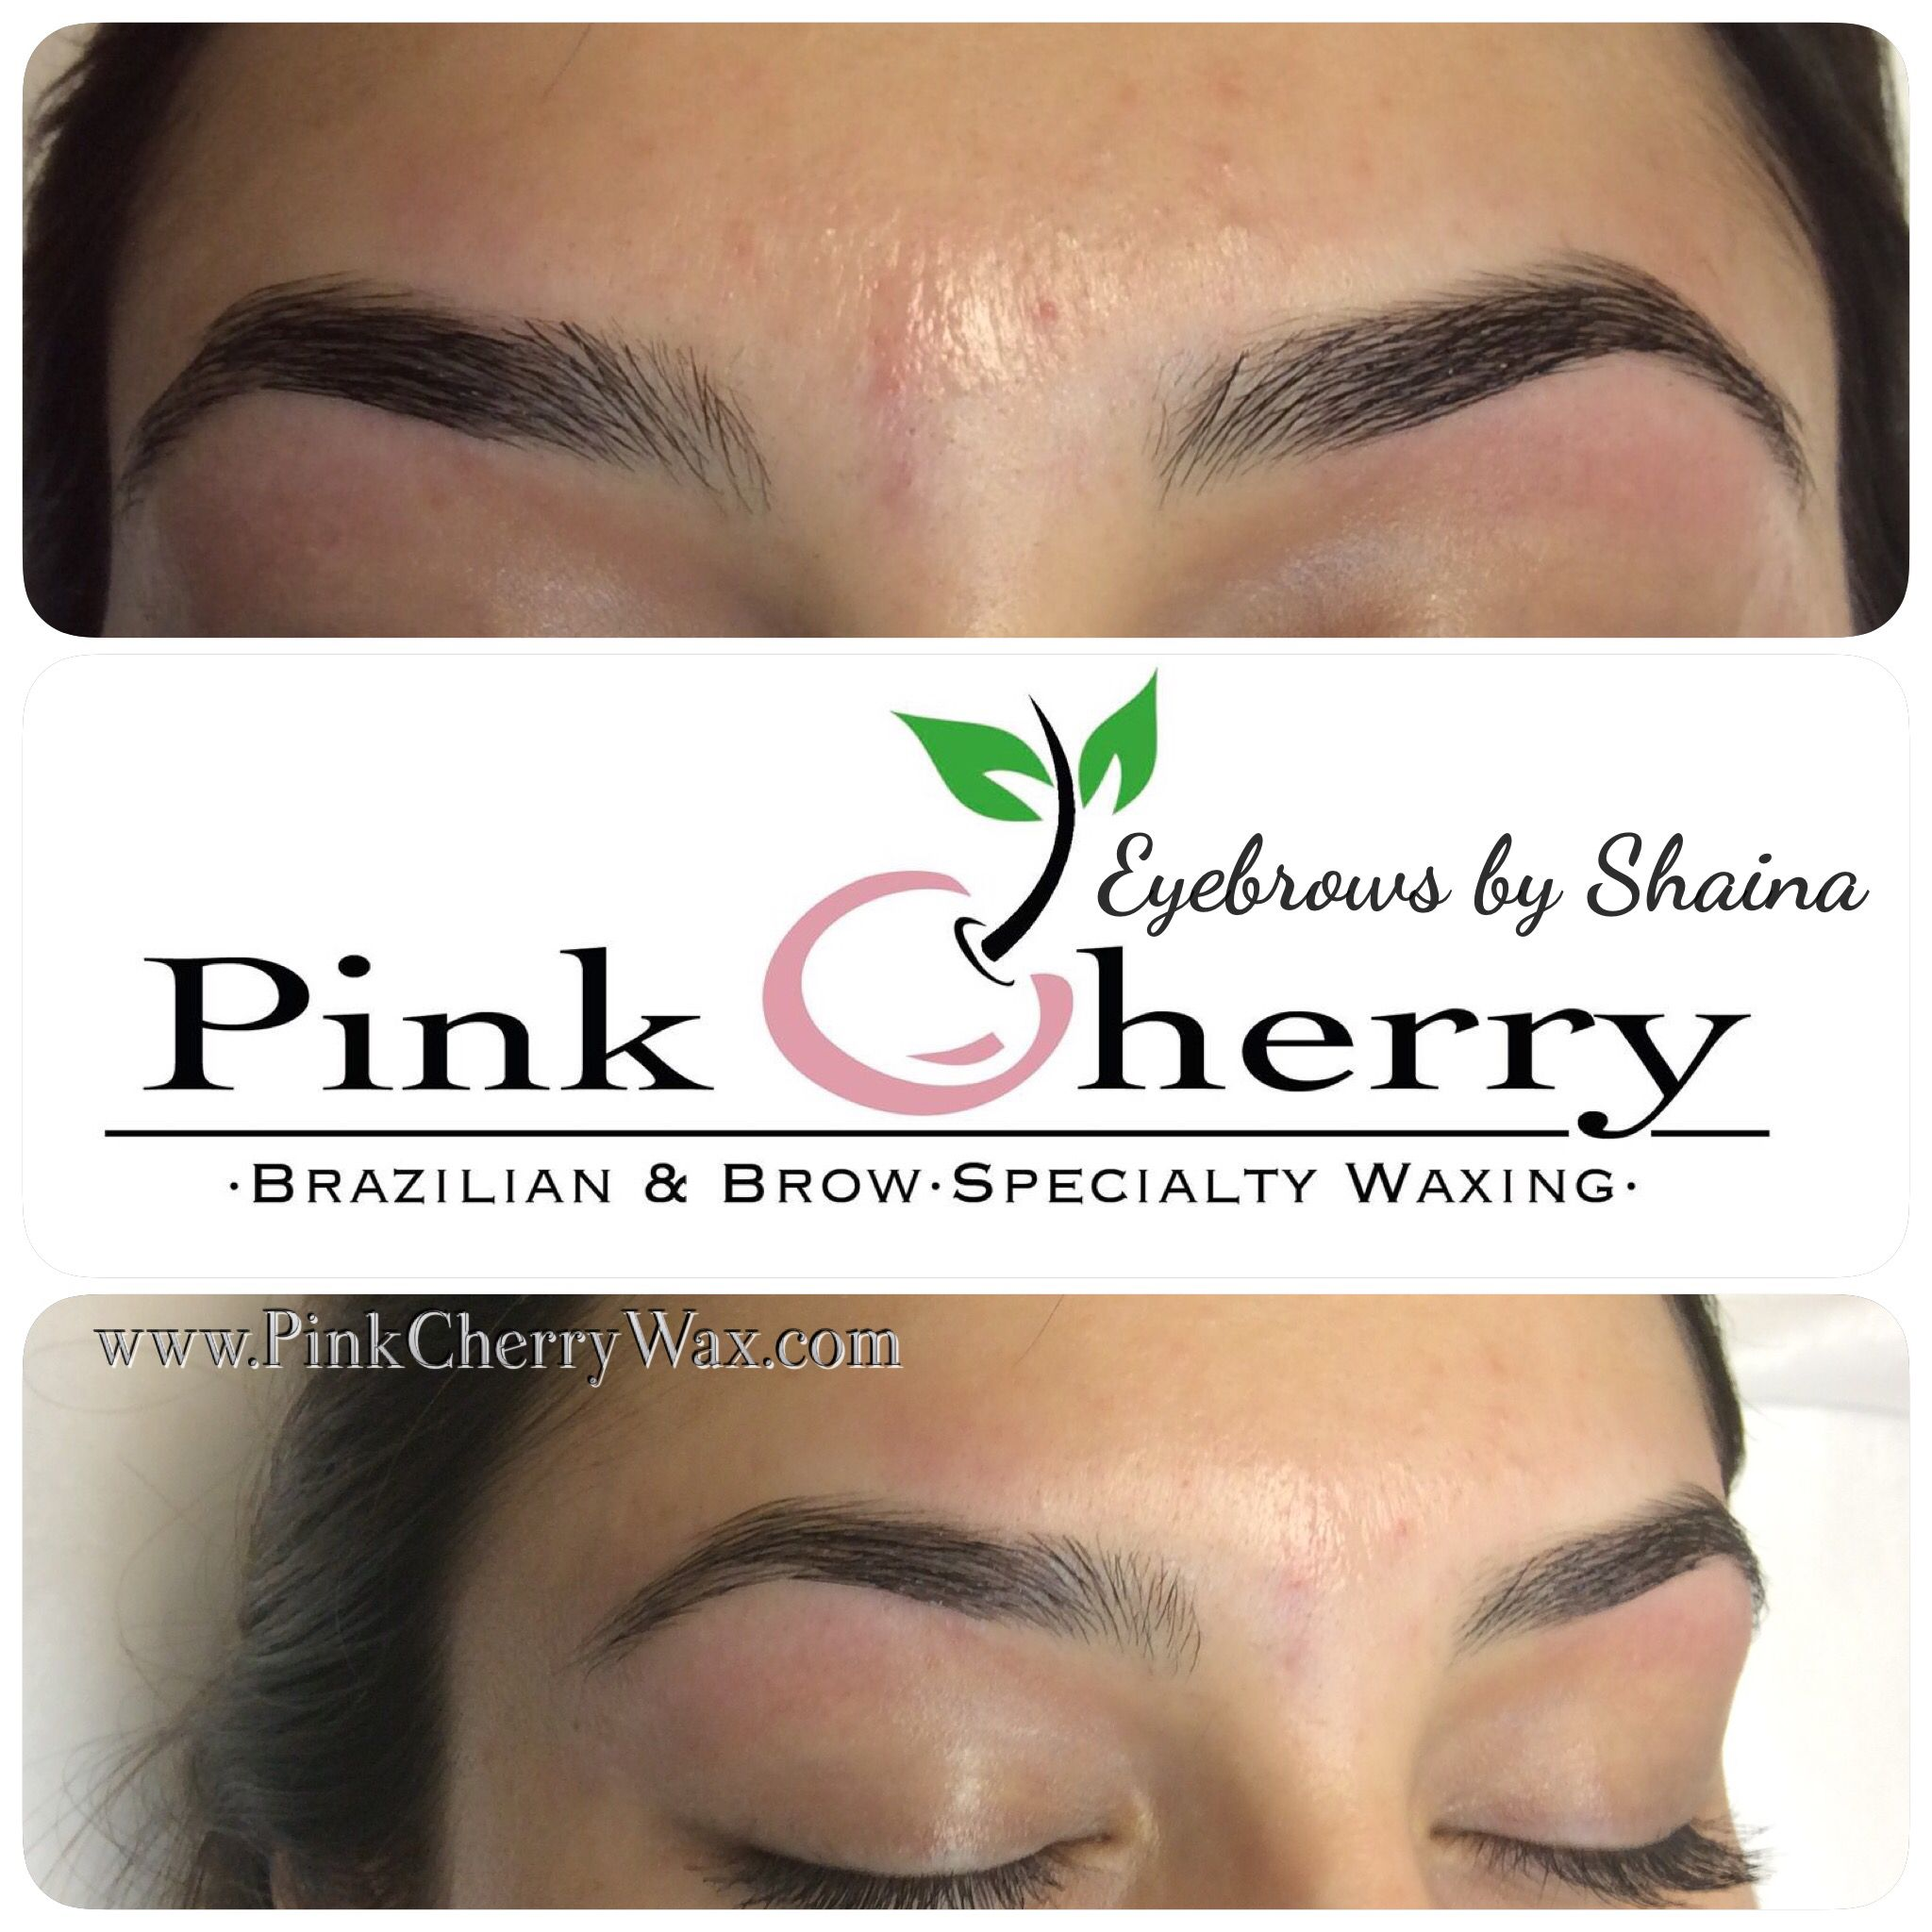 Gorgeous Natural Eyebrow Shape By Shaina Want To More Check Us Out At Www Pinkcherrywax Com Natural Eyebrows Eyebrow Shape Eyebrows